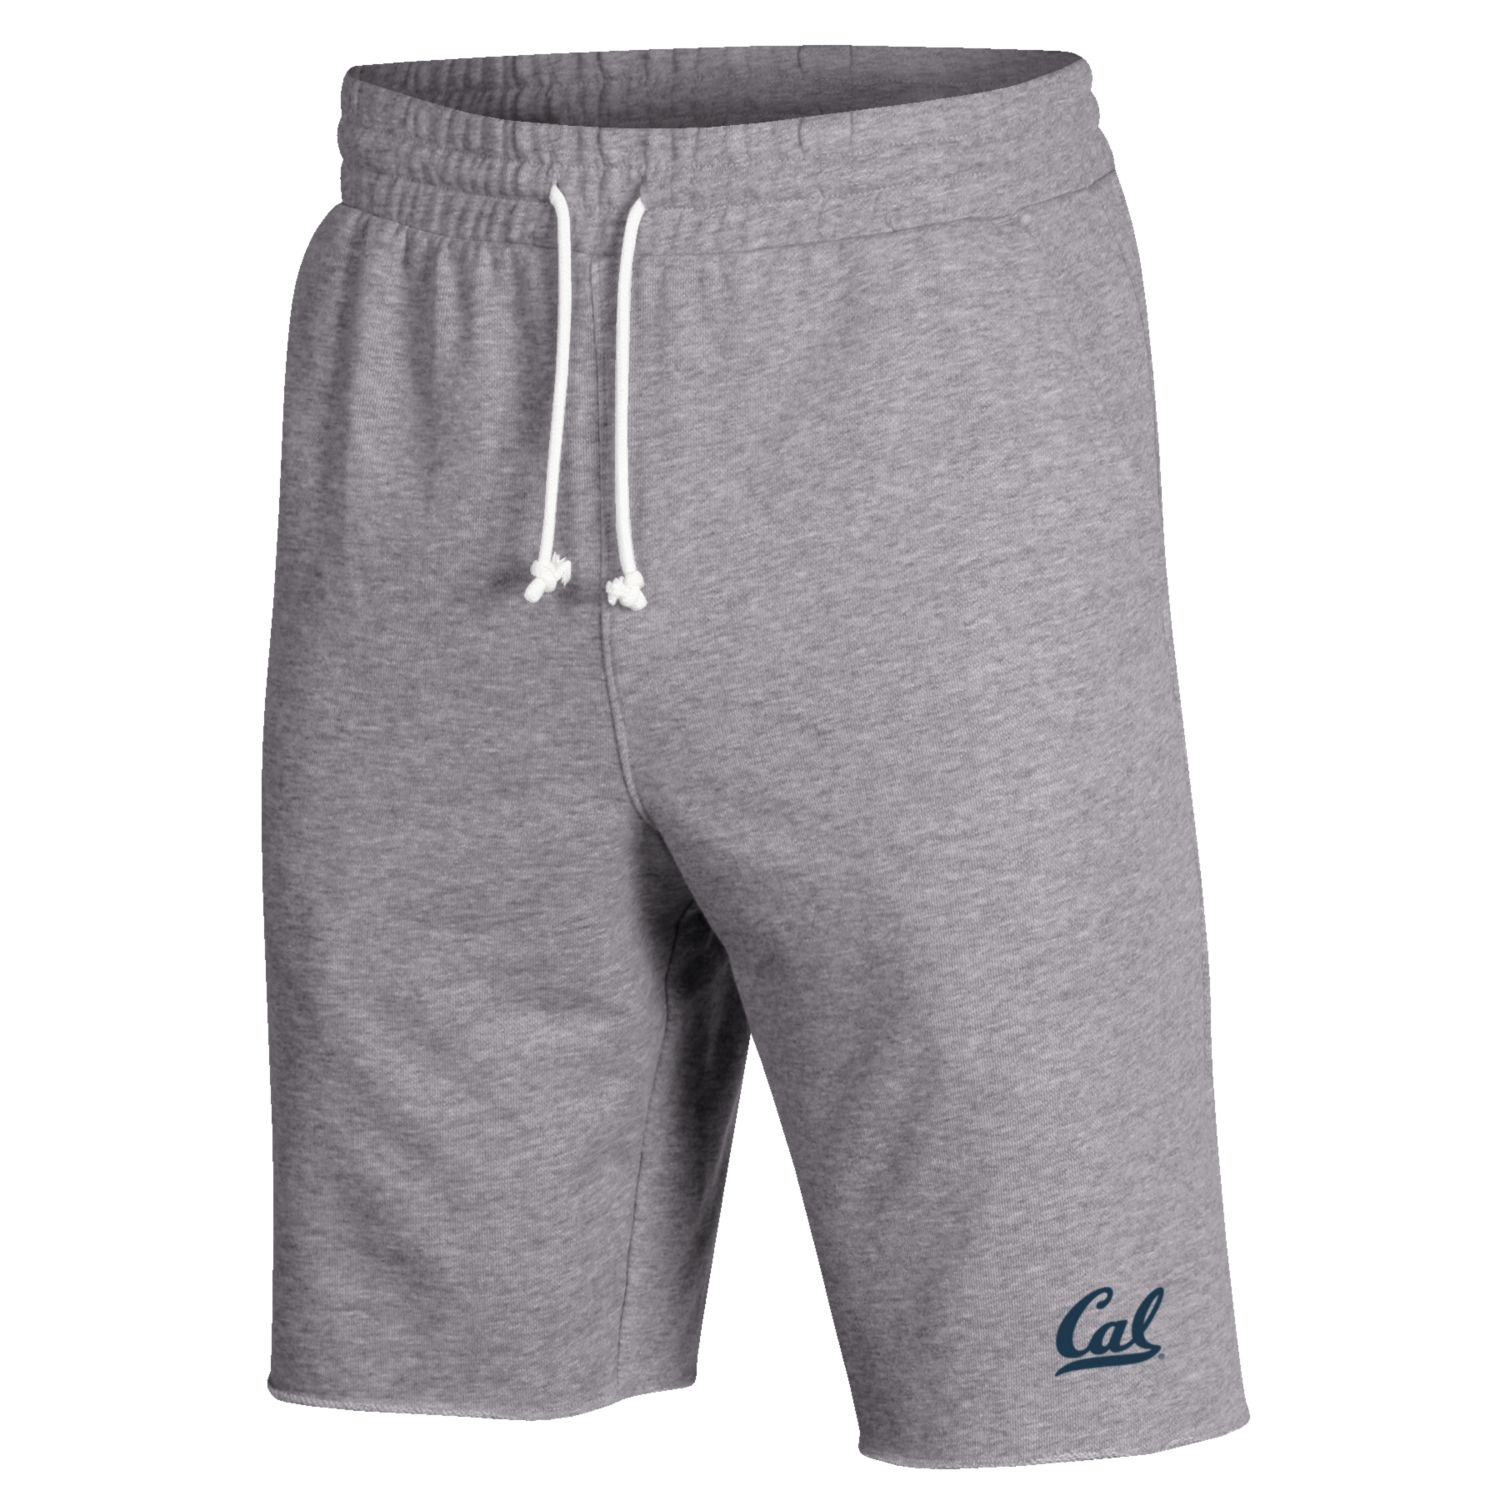 Men's Sportstyle Terry Short Under Armour Cal